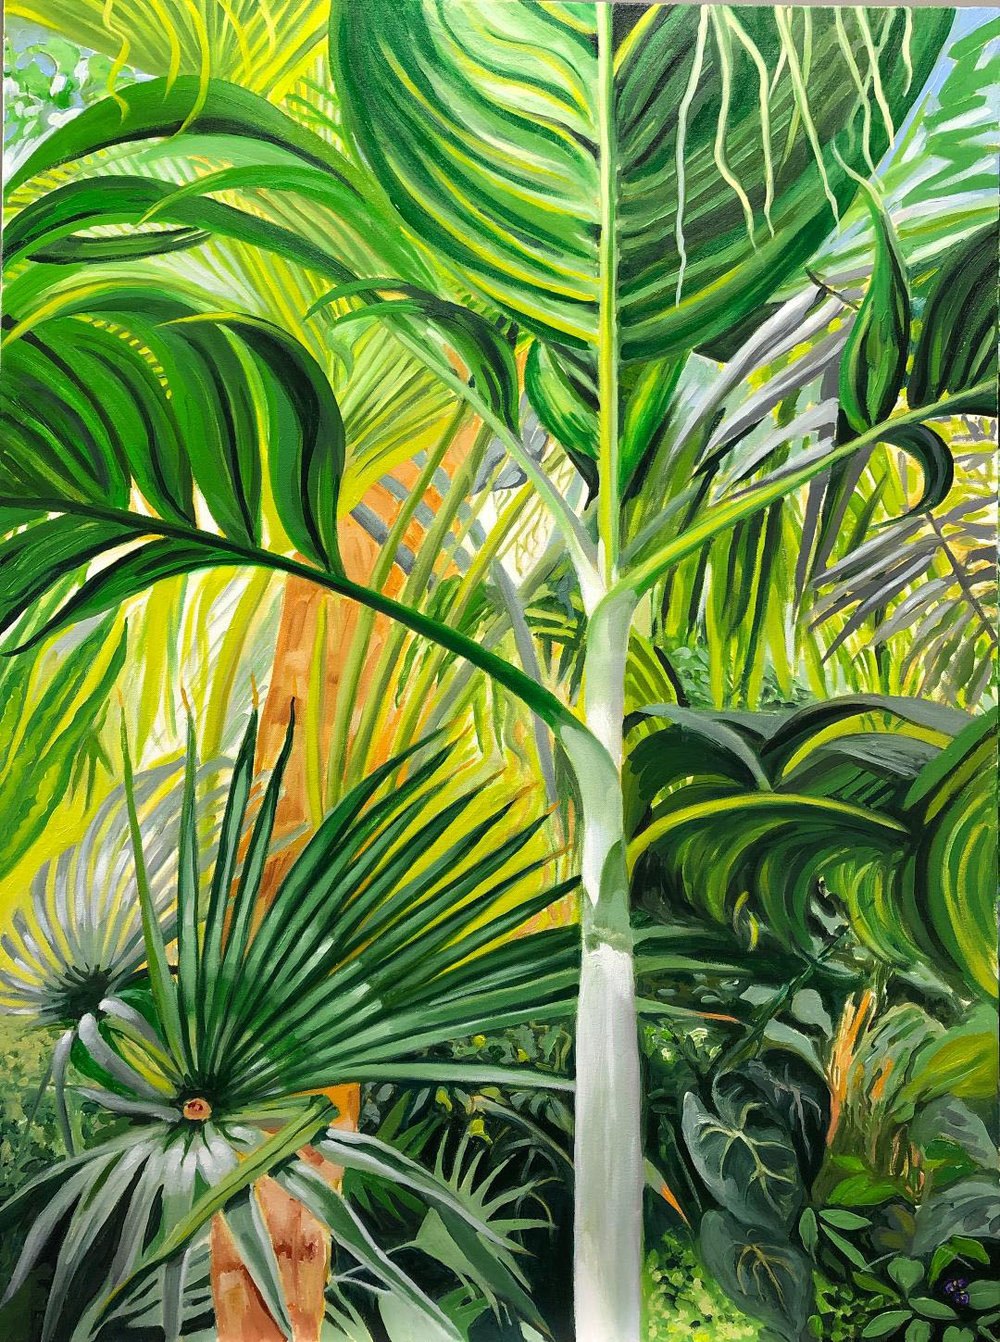 Bronx Palms, 2019, oil on canvas, 48 x 36 inches